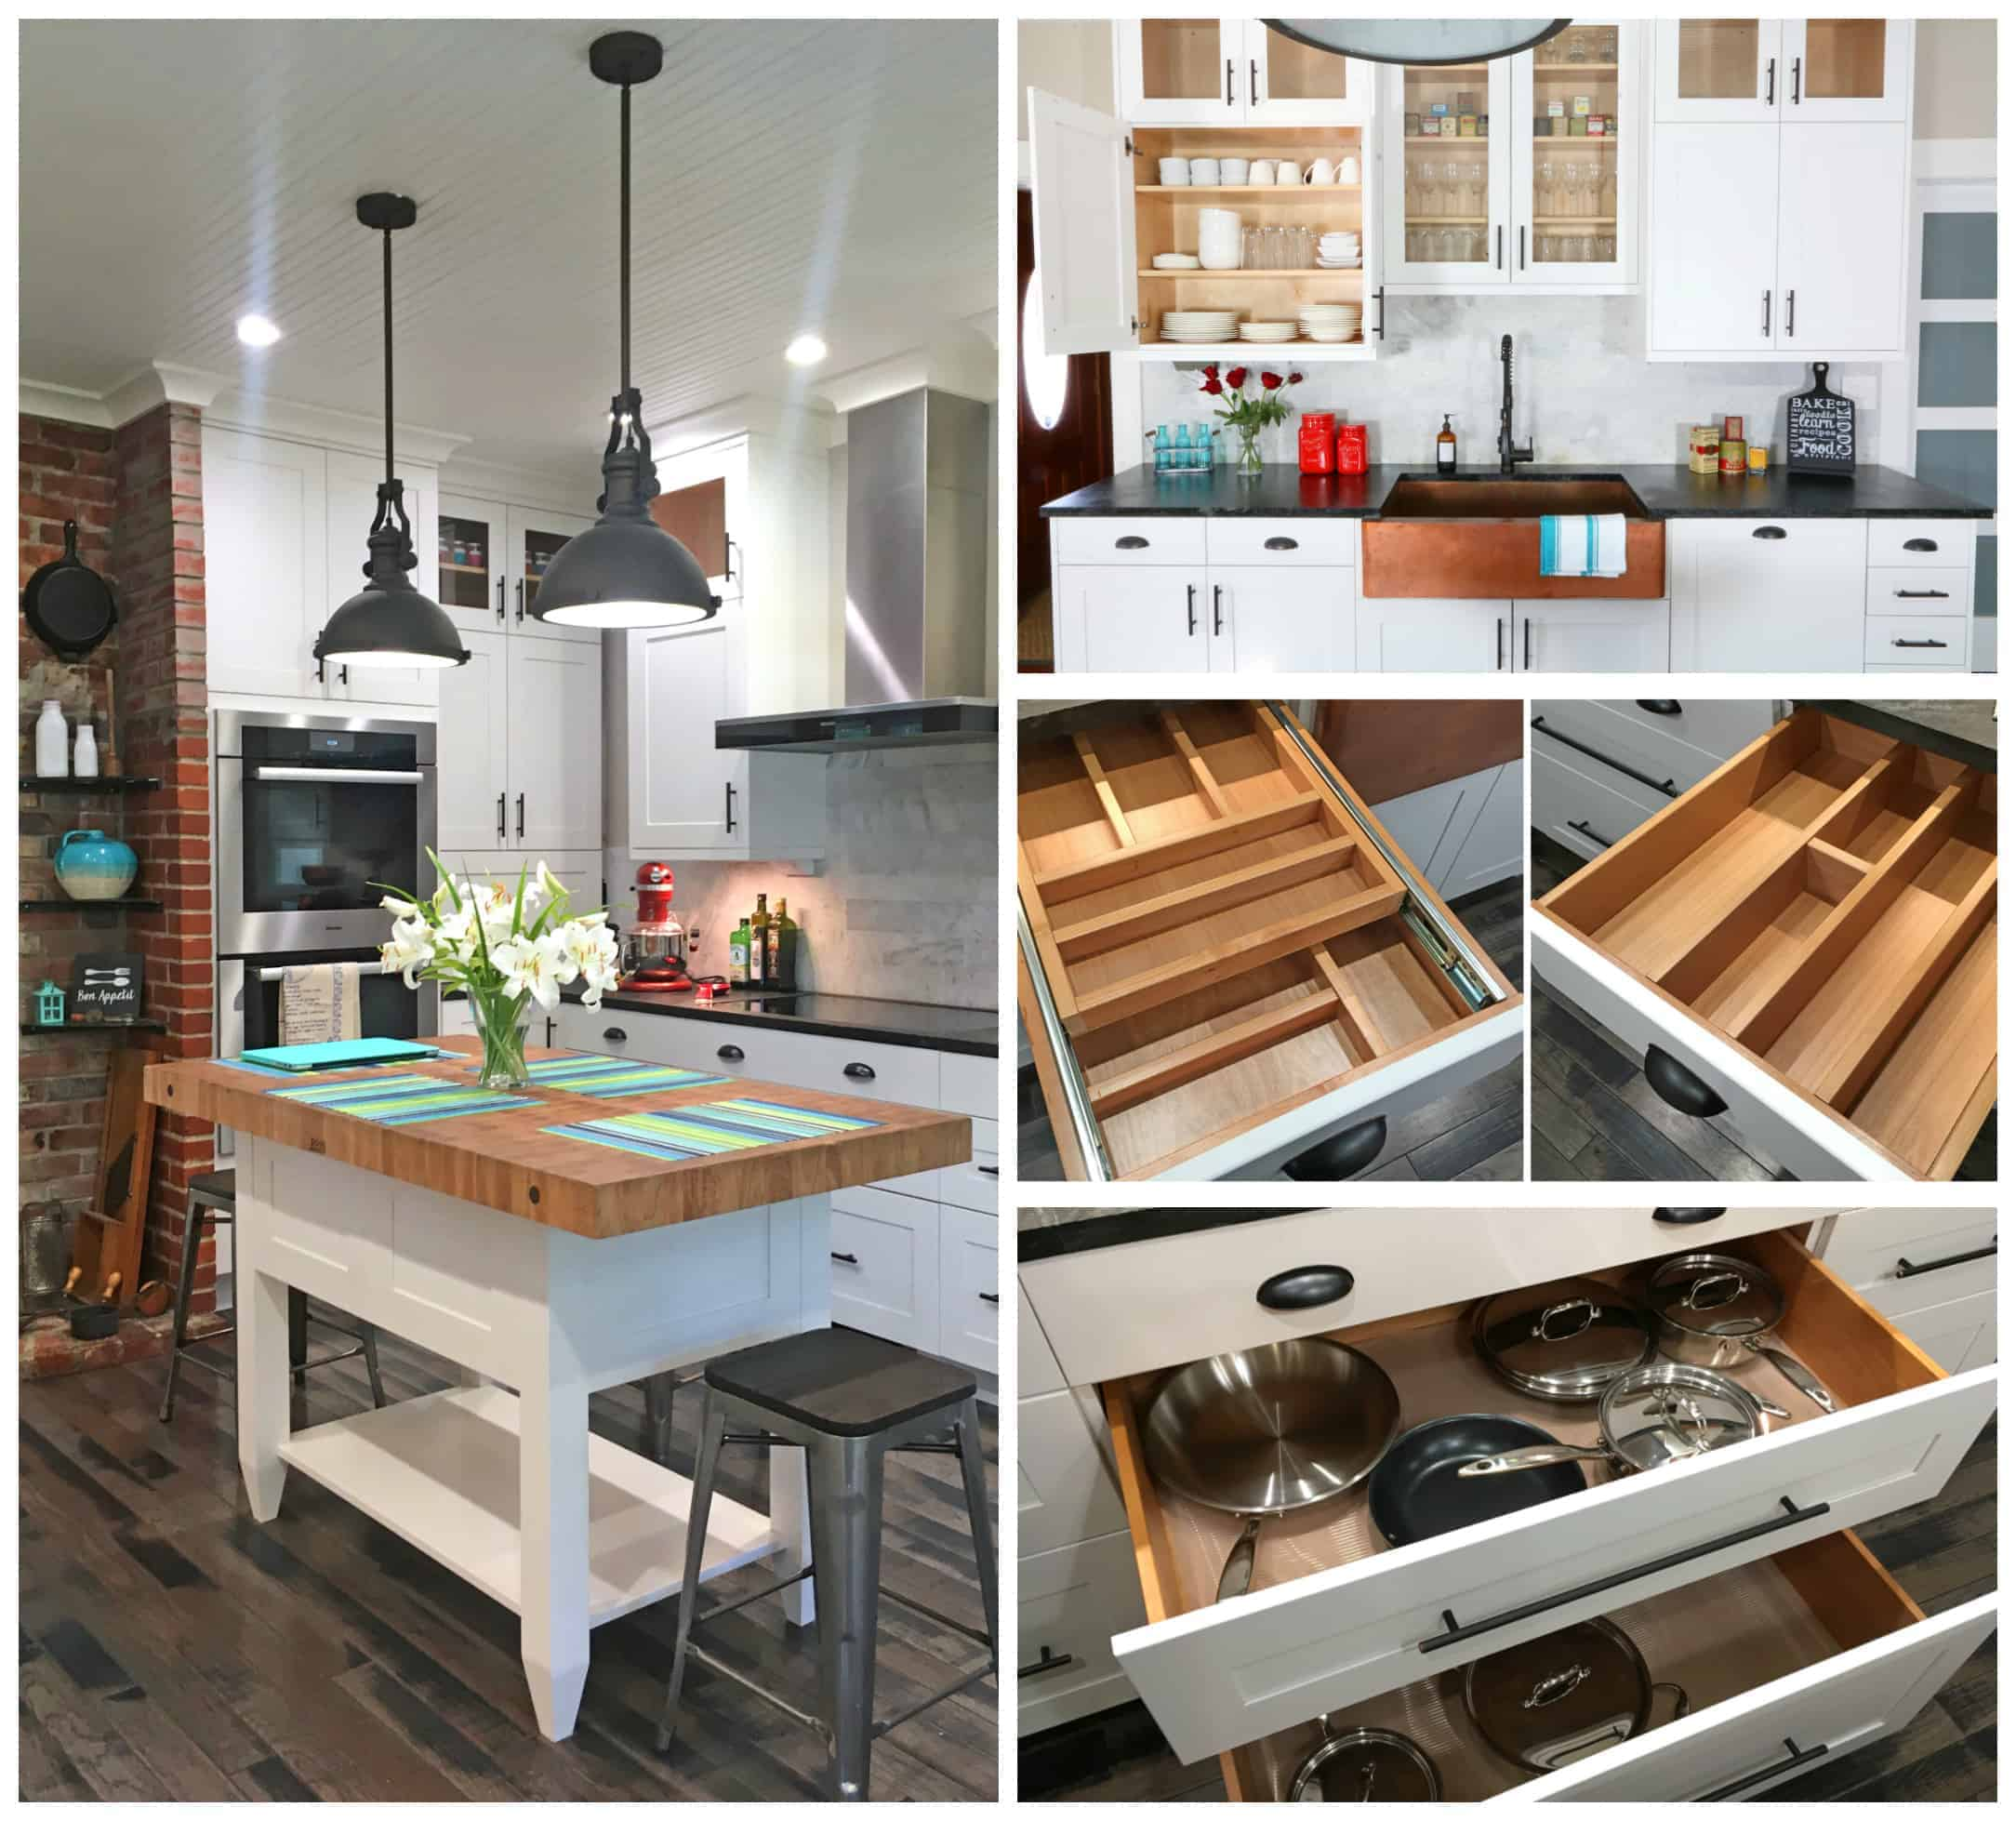 The 1912 Modern Farmhouse Kitchen Remodel The Cabinets